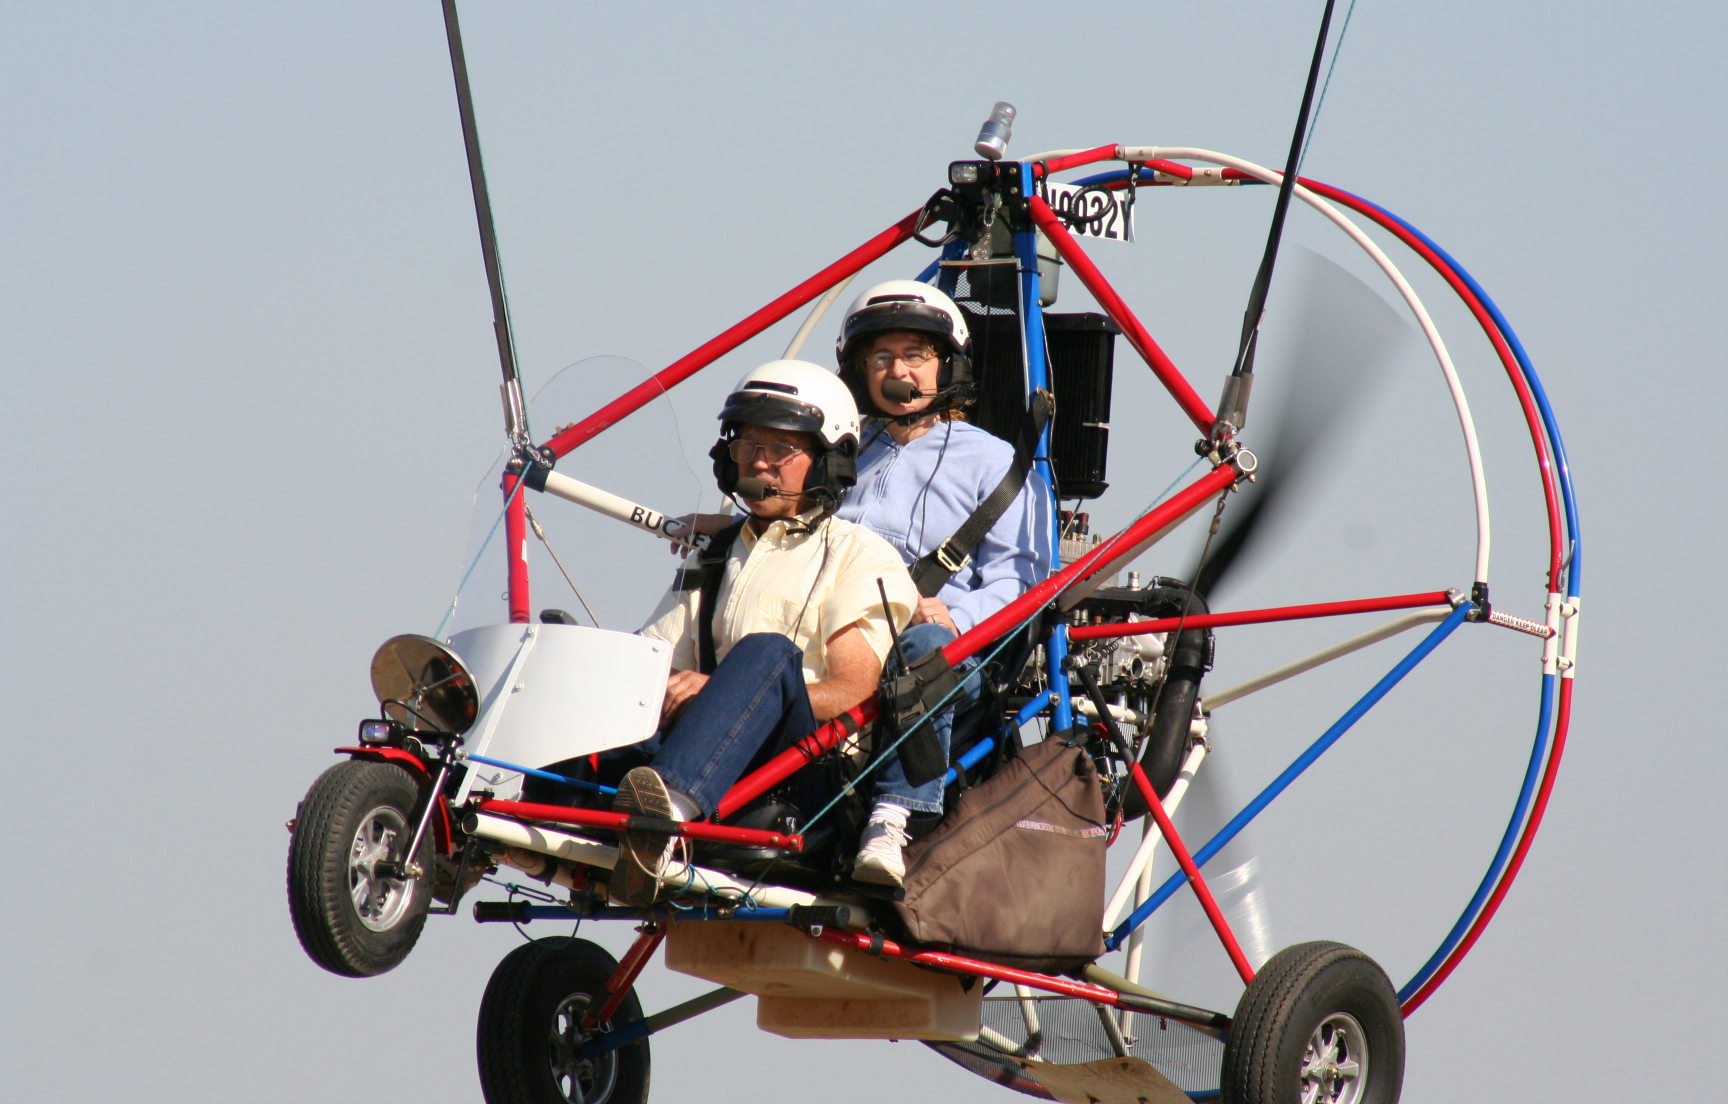 ARLINGTON, WA -Aug 29-30, 2020 – REPAIRMAN INSPECTION  Powered Parachute